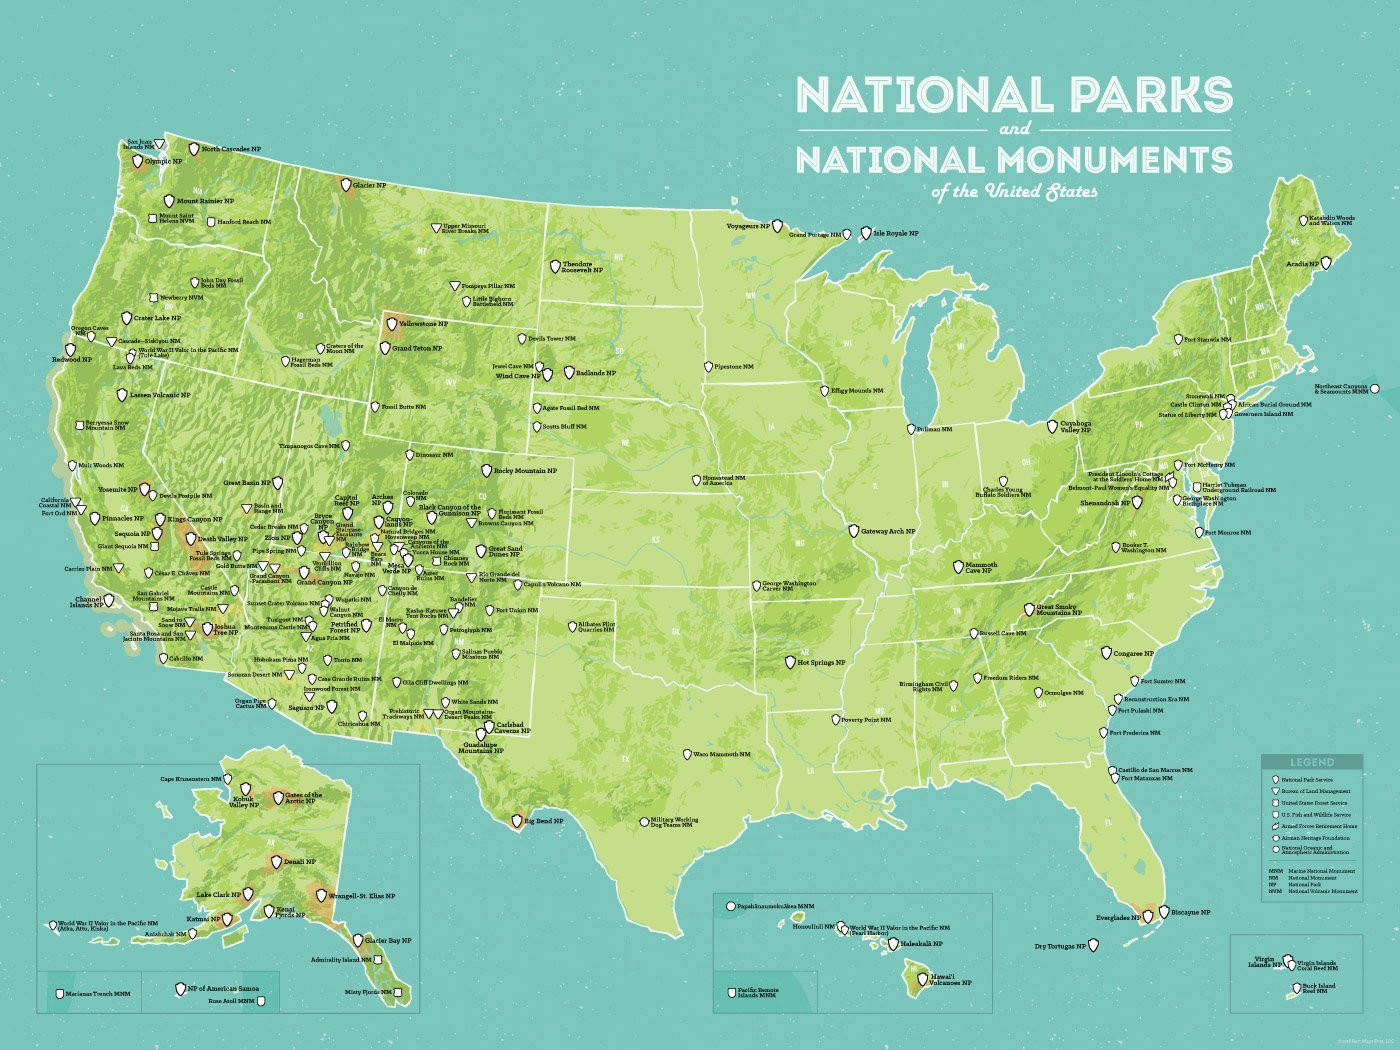 Printable Map National Parks Best Of Us National Parks & National Monuments Map 18x24 Poster Best Maps Ever